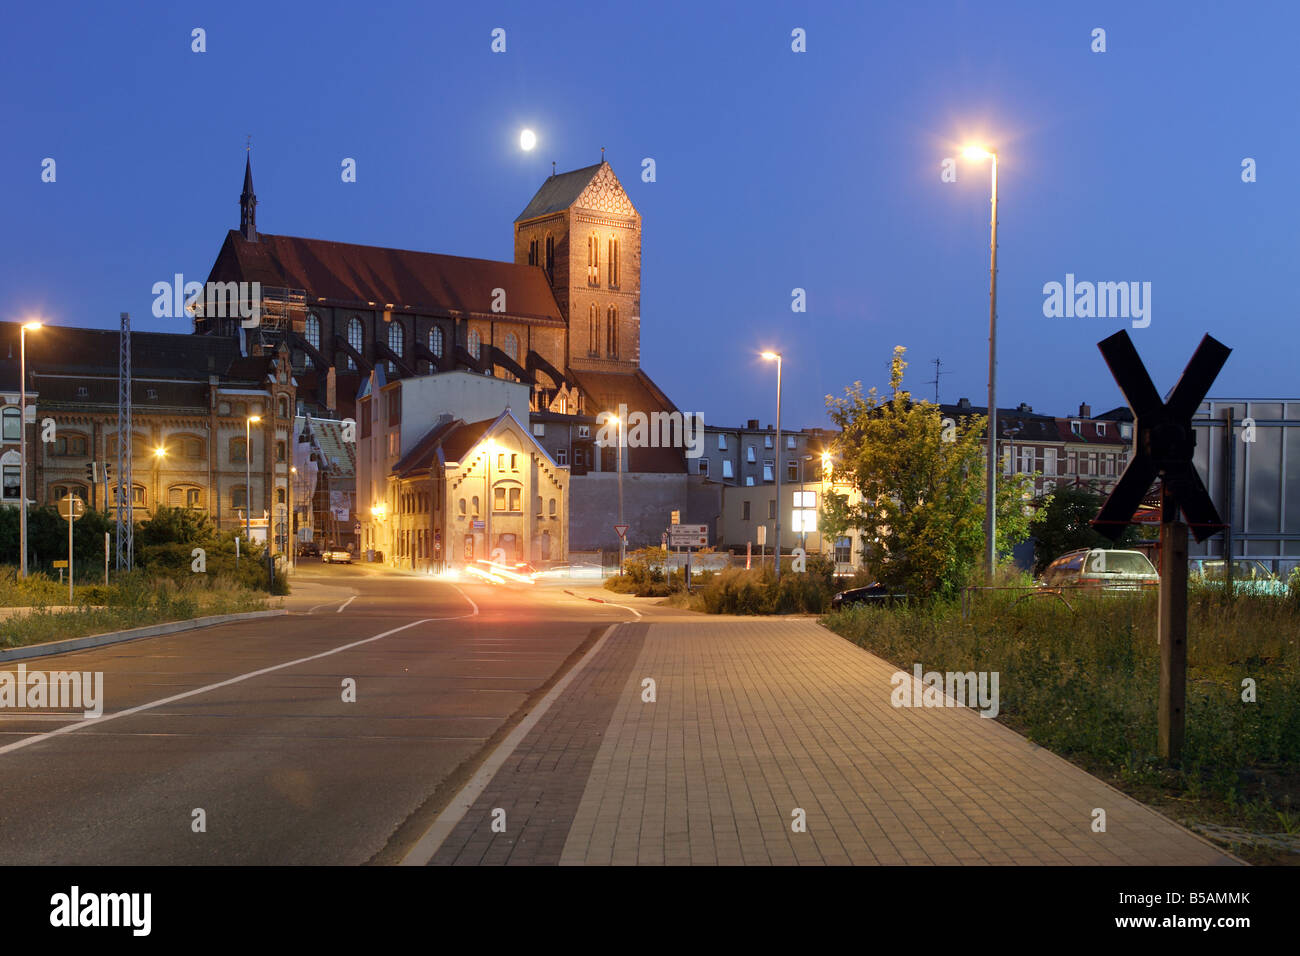 St. Nikolai's Church in Wismar in the evening, Germany - Stock Image